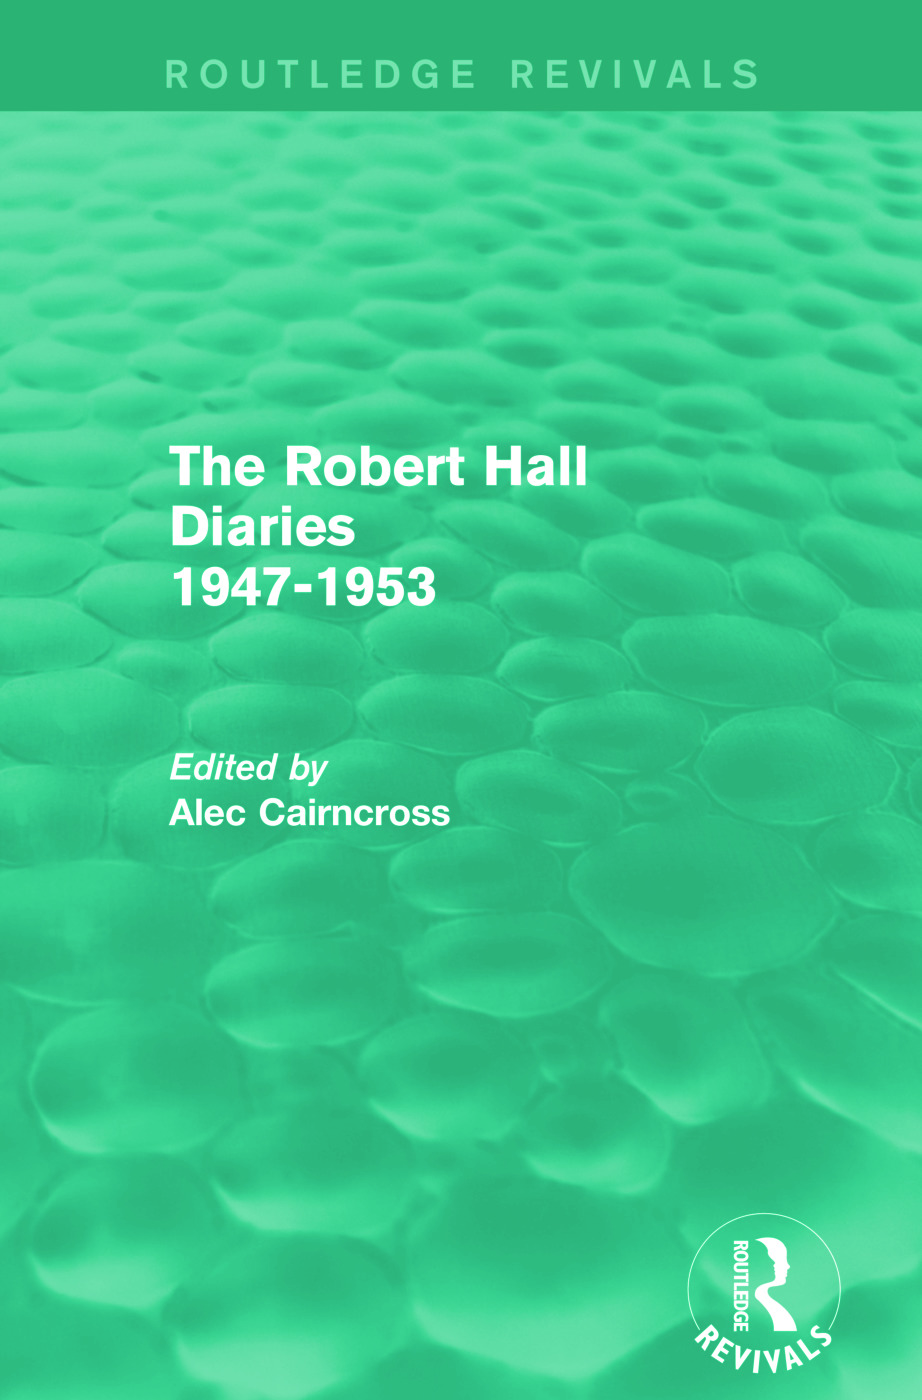 The Robert Hall Diaries 1947-1953 (Routledge Revivals) book cover